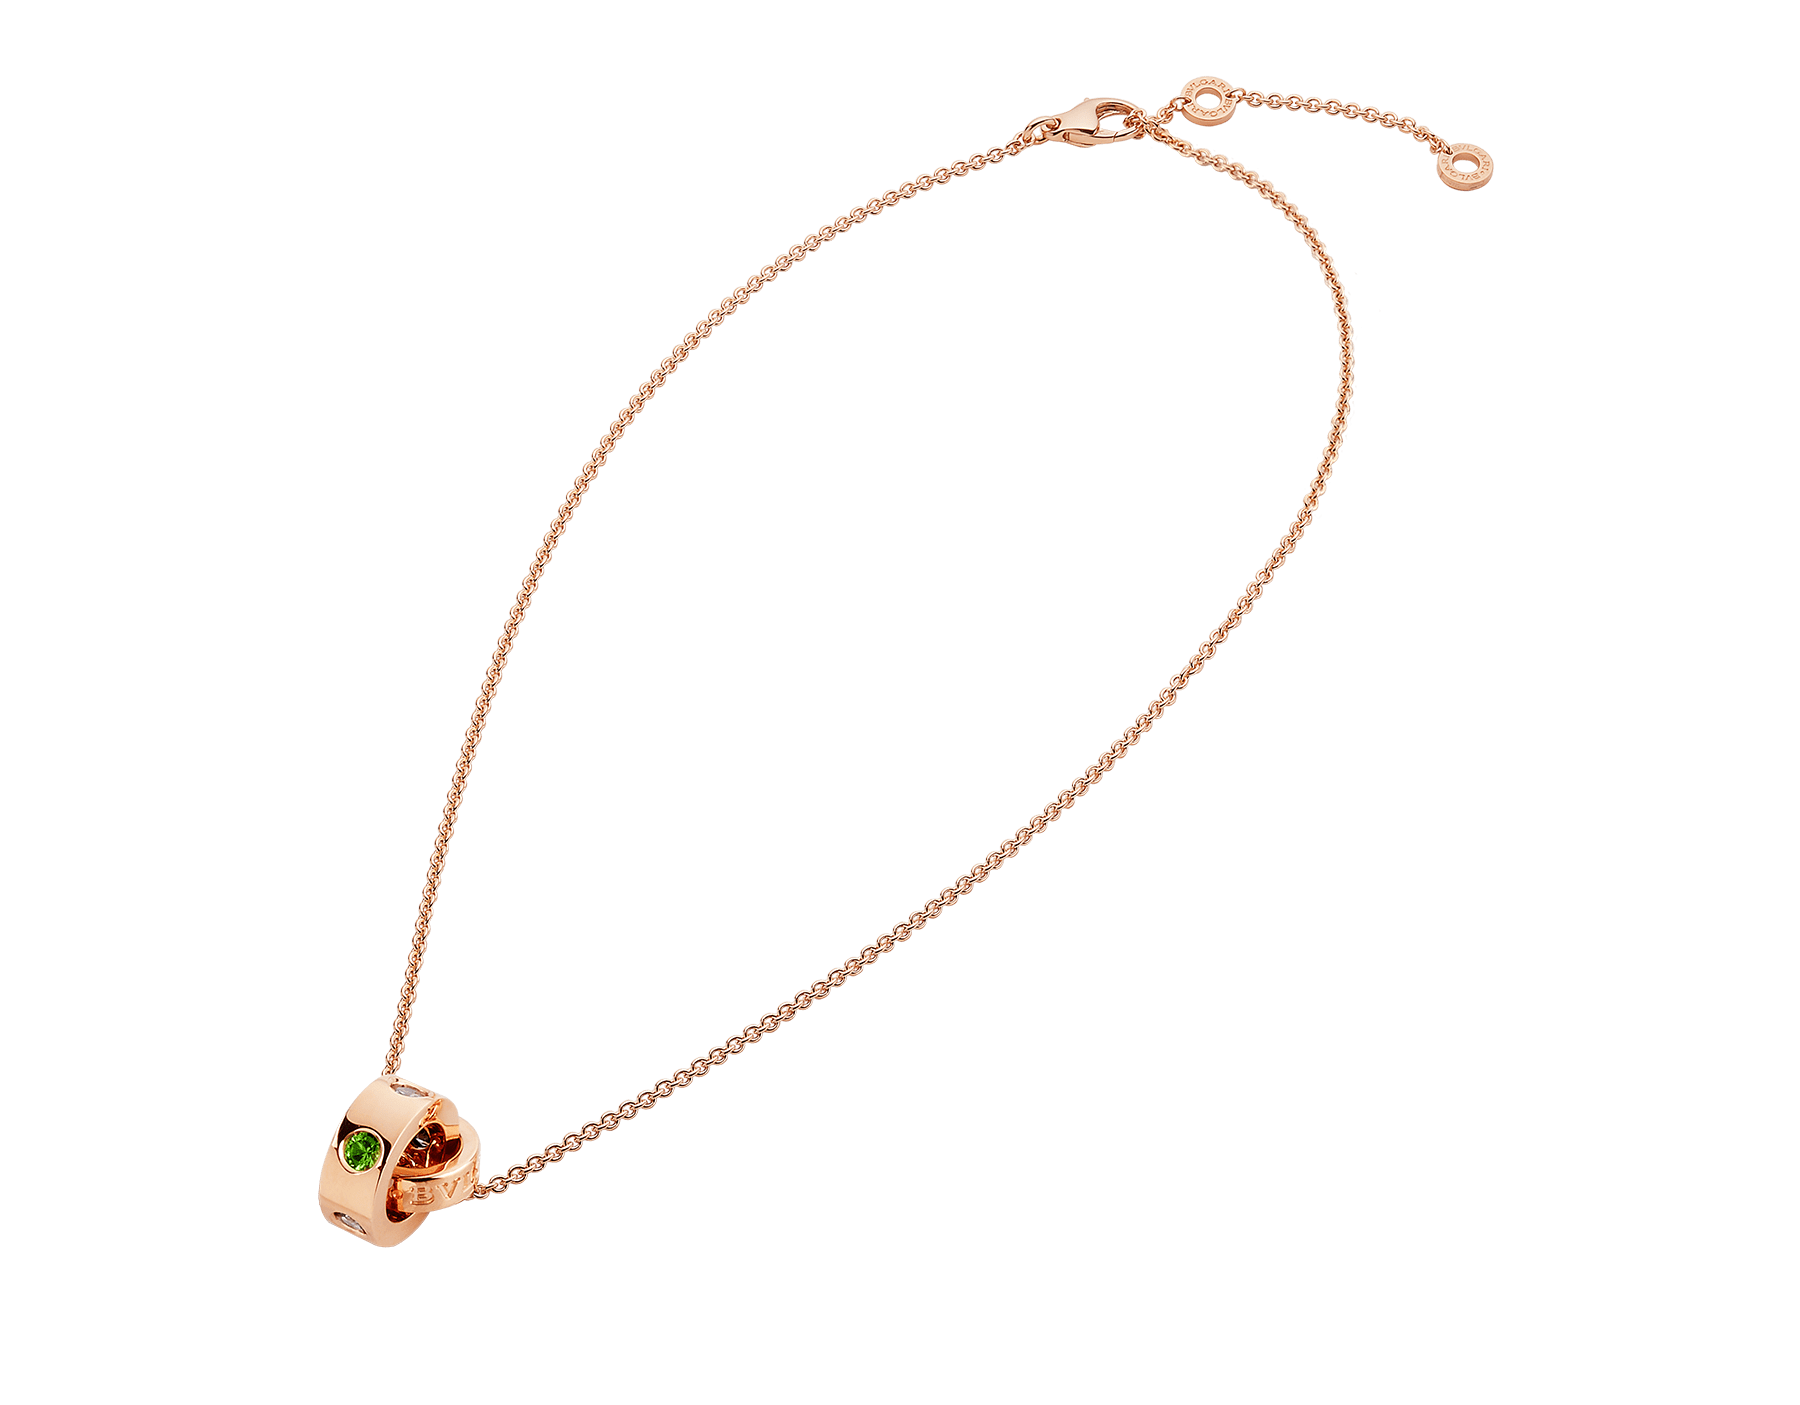 BVLGARI BVLGARI necklace with 18 kt rose gold chain and 18 kt rose gold pendant set with blue sapphires and tsavorites 352619 image 2